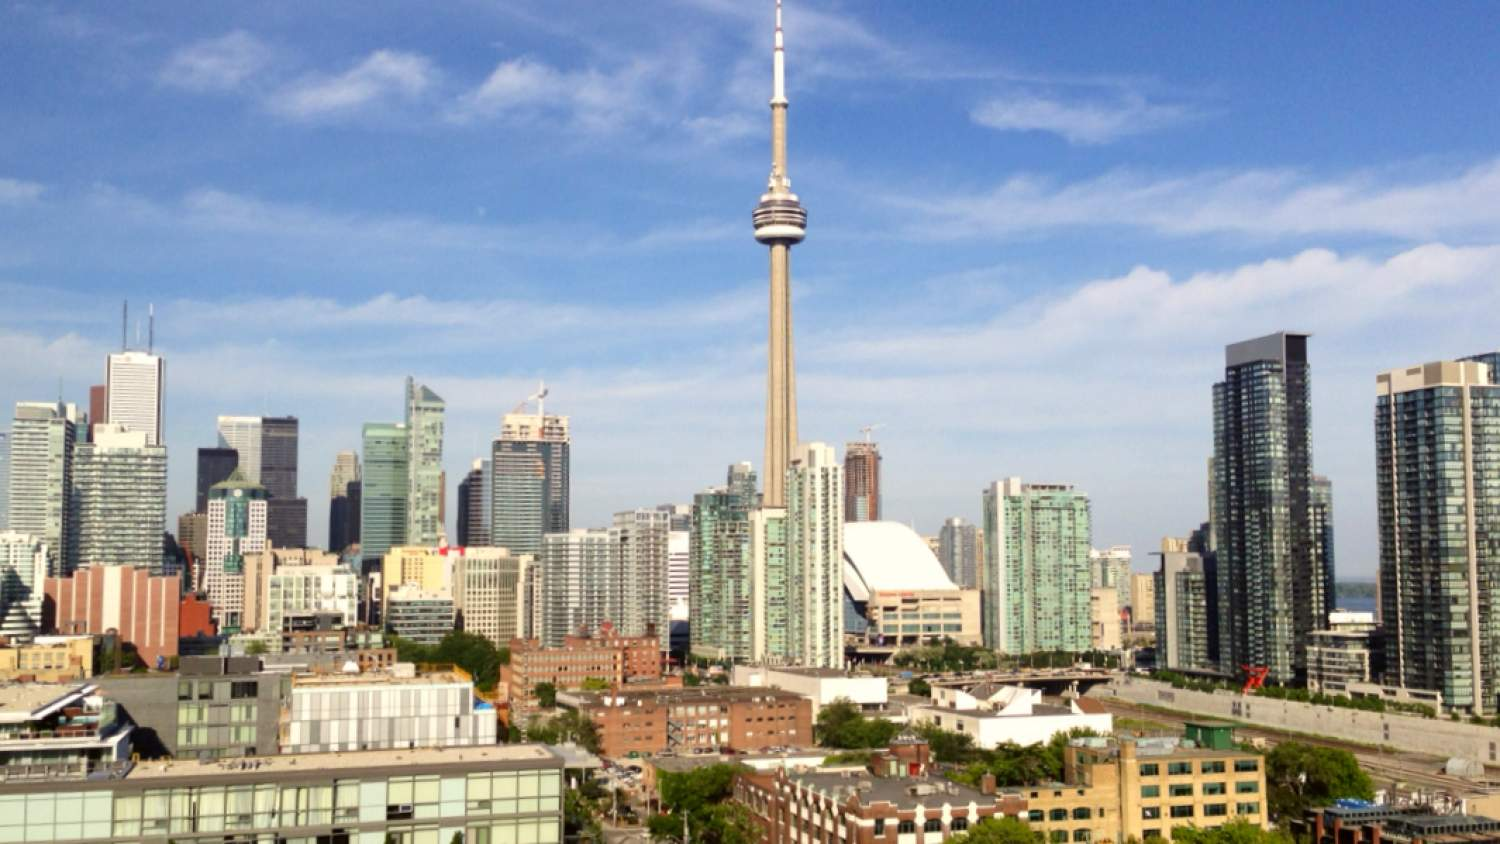 View of Toronto from the Thompson Hotel terrace